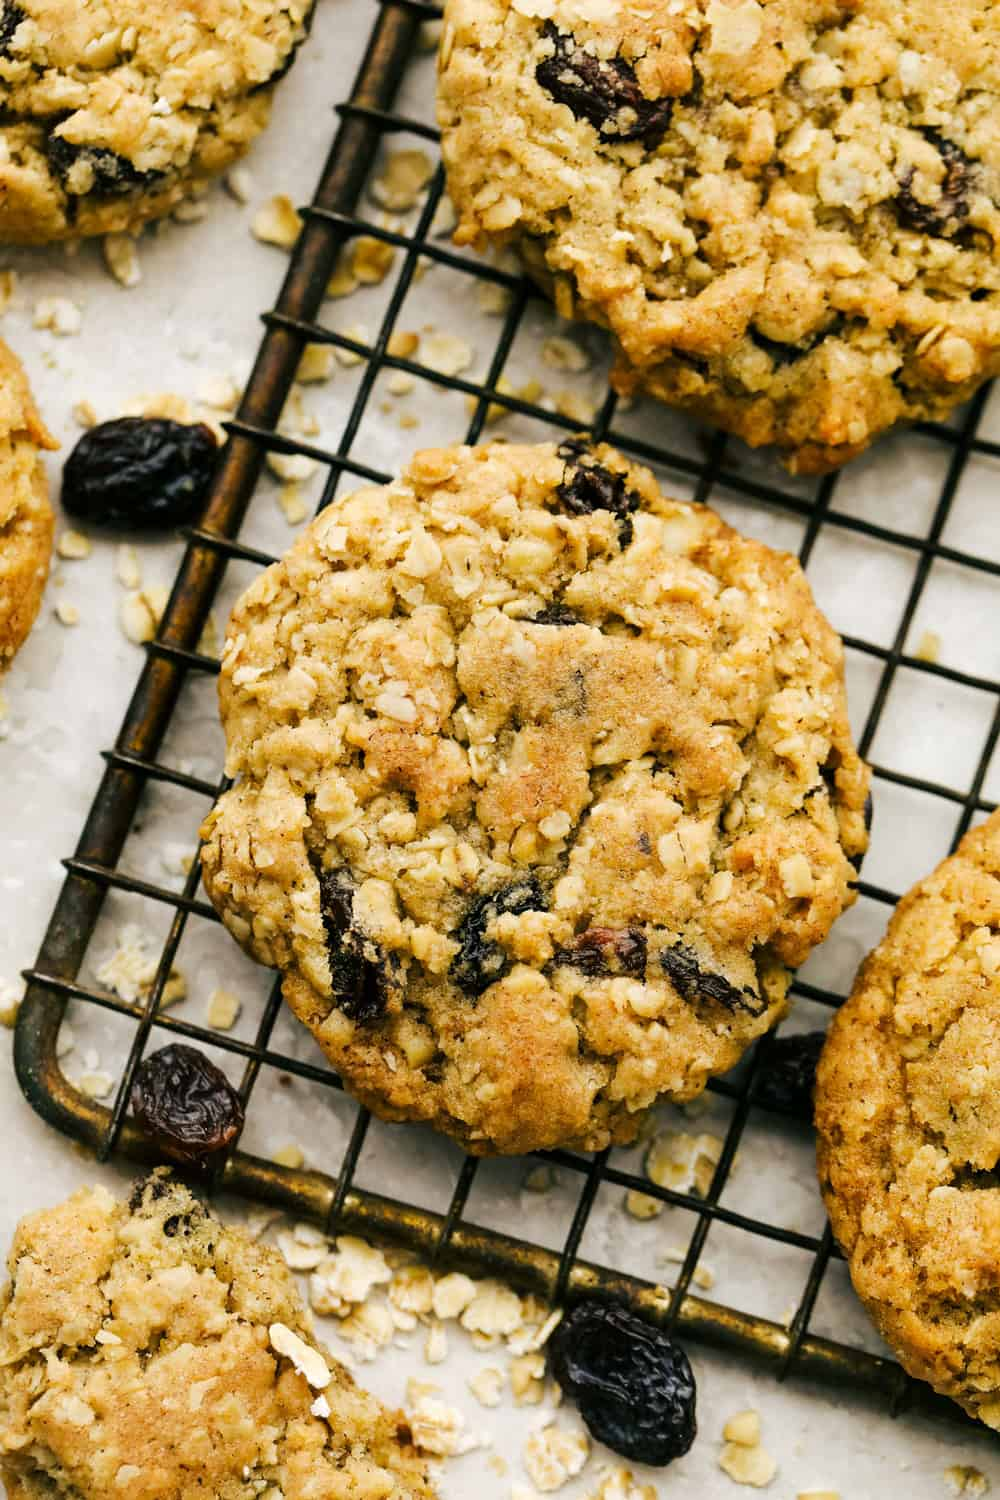 Baked oatmeal cookies on a cooling rack.